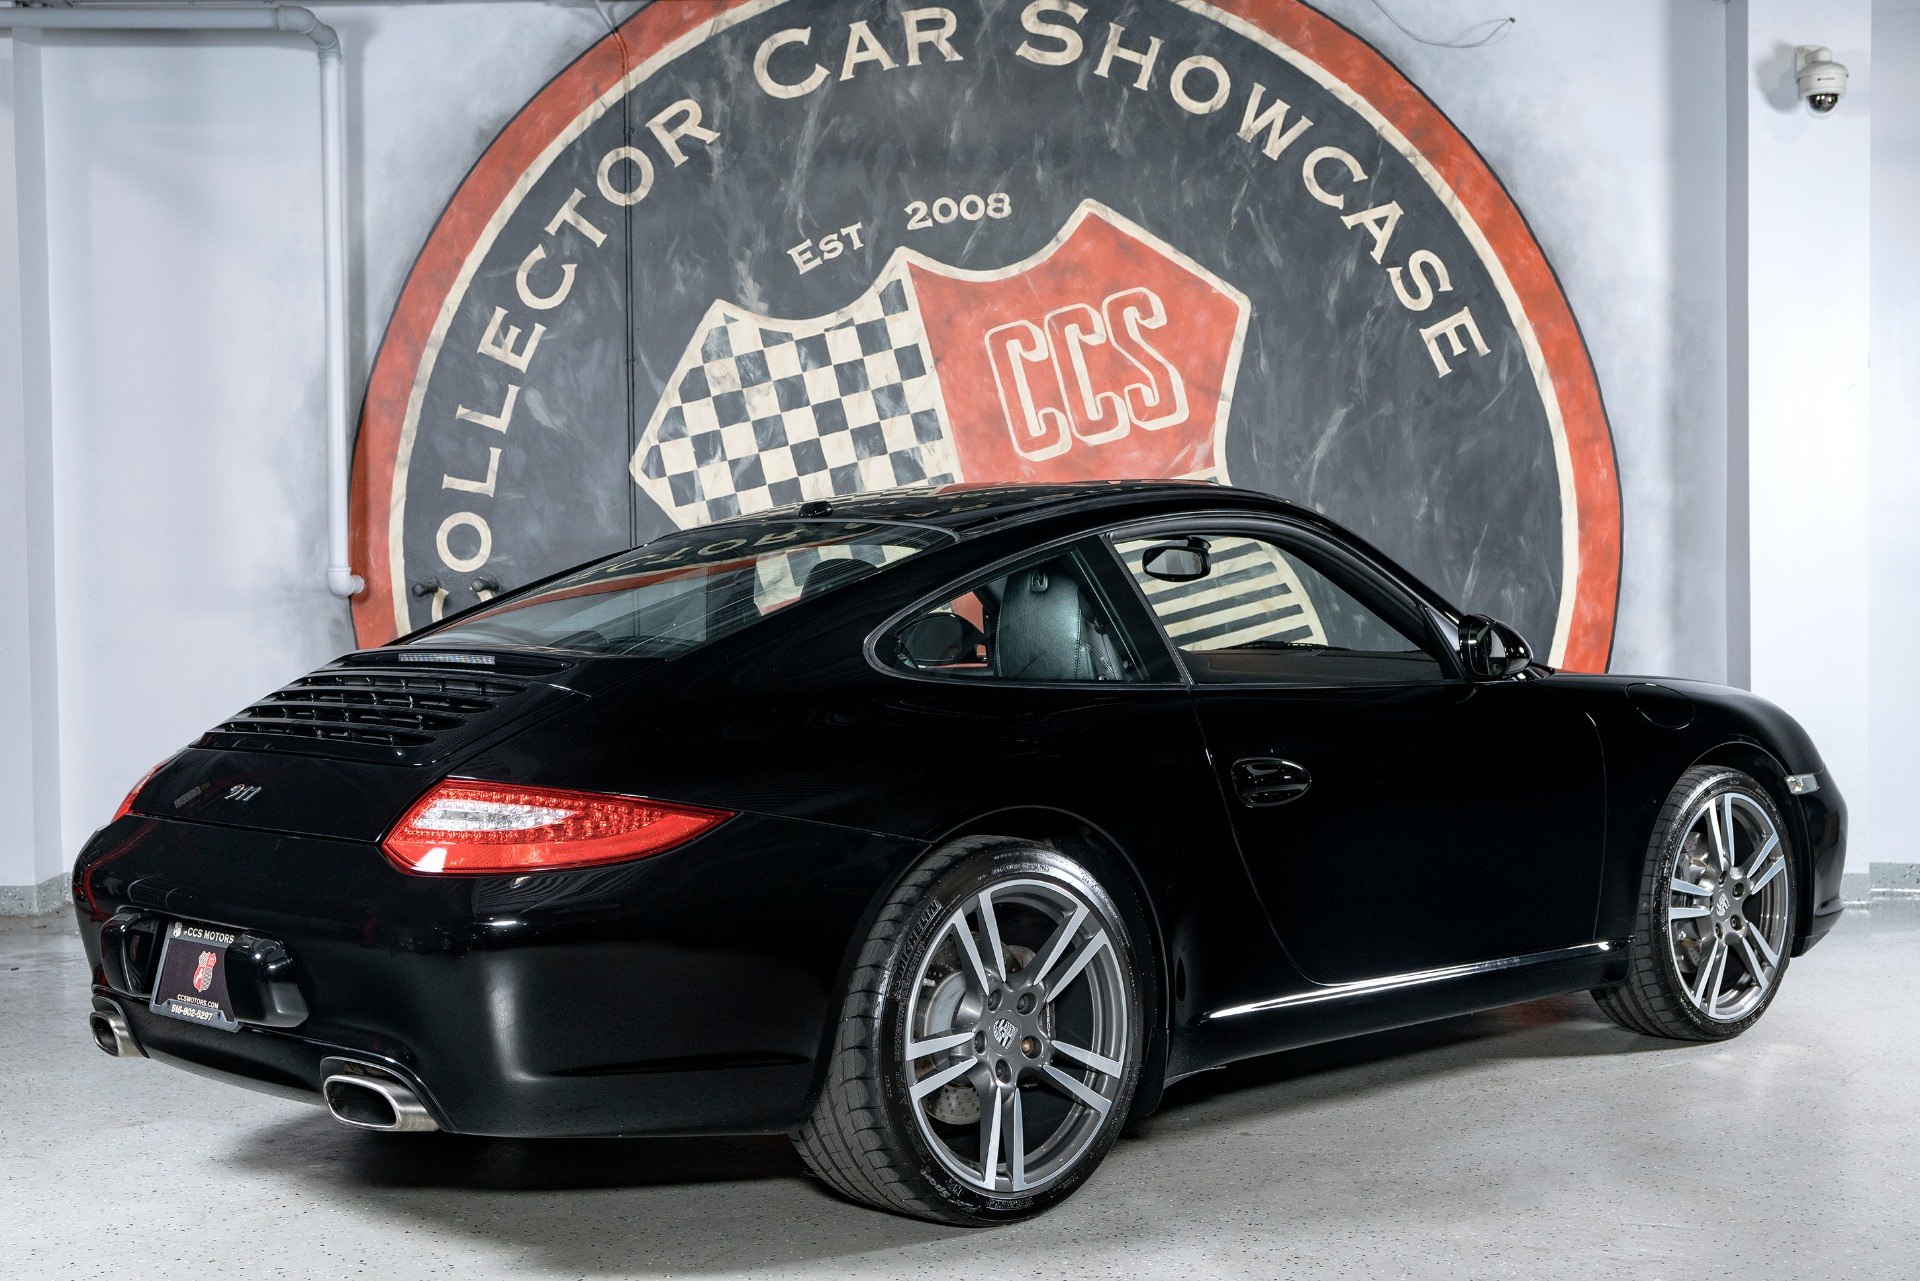 2012 porsche 911 black edition coupe stock 1385 for sale near oyster bay ny ny porsche dealer. Black Bedroom Furniture Sets. Home Design Ideas